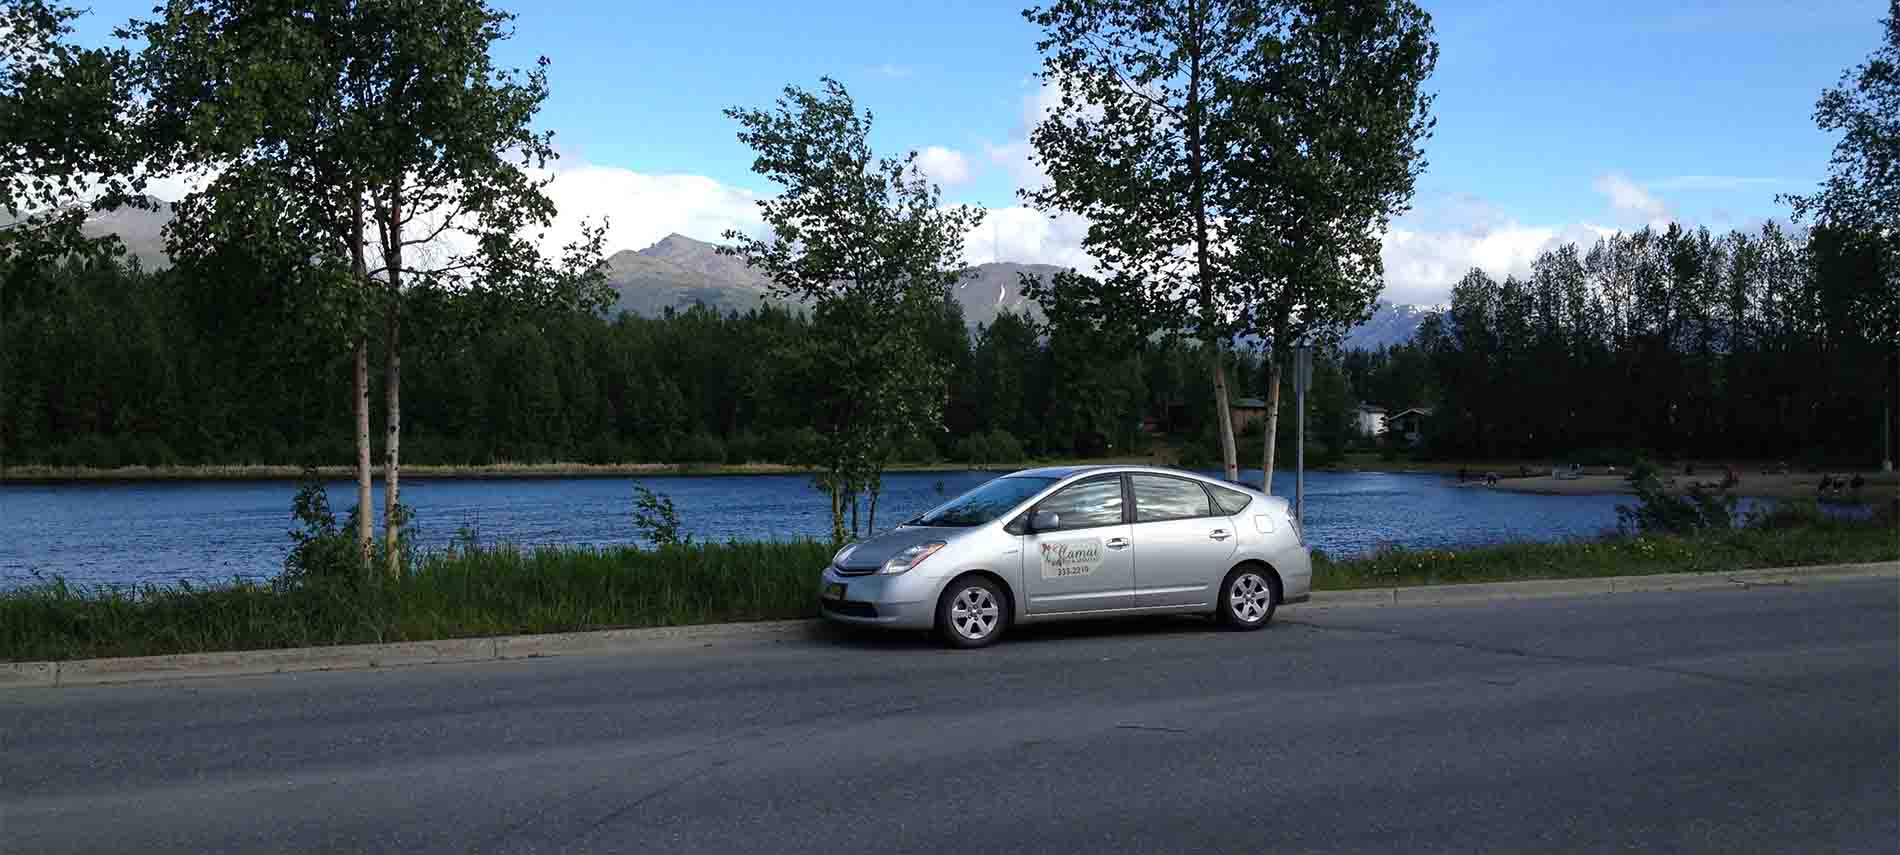 Mountain range background and lake surround by leafy green trees with car on street